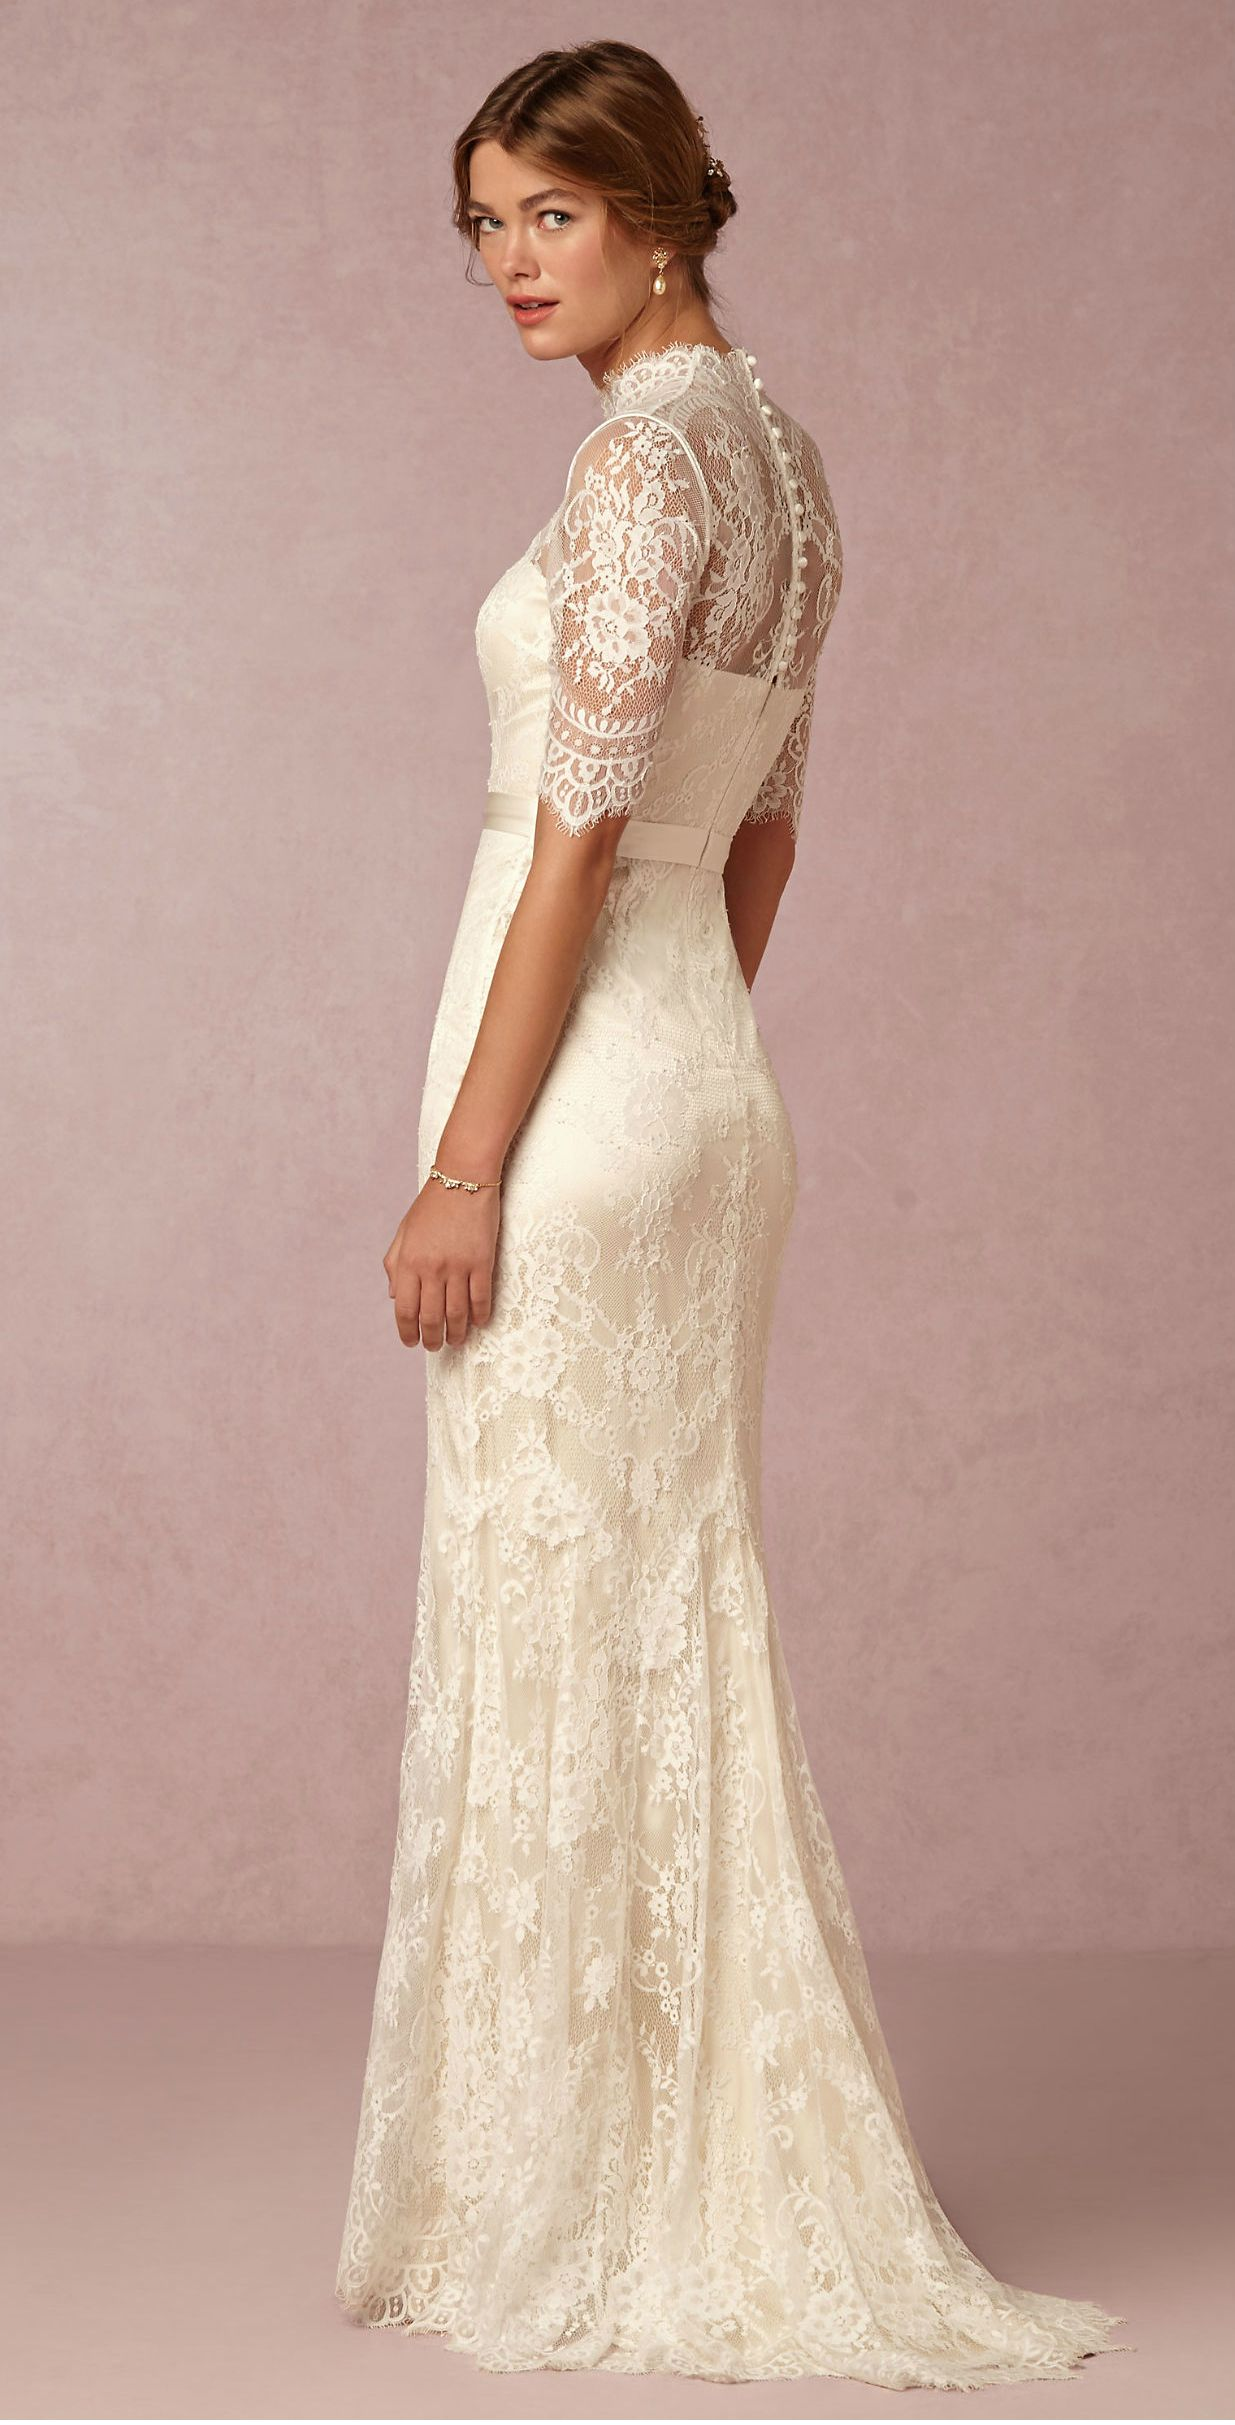 New Wedding Dresses from BHLDN for Fall 2015 | Vestidos de novia ...